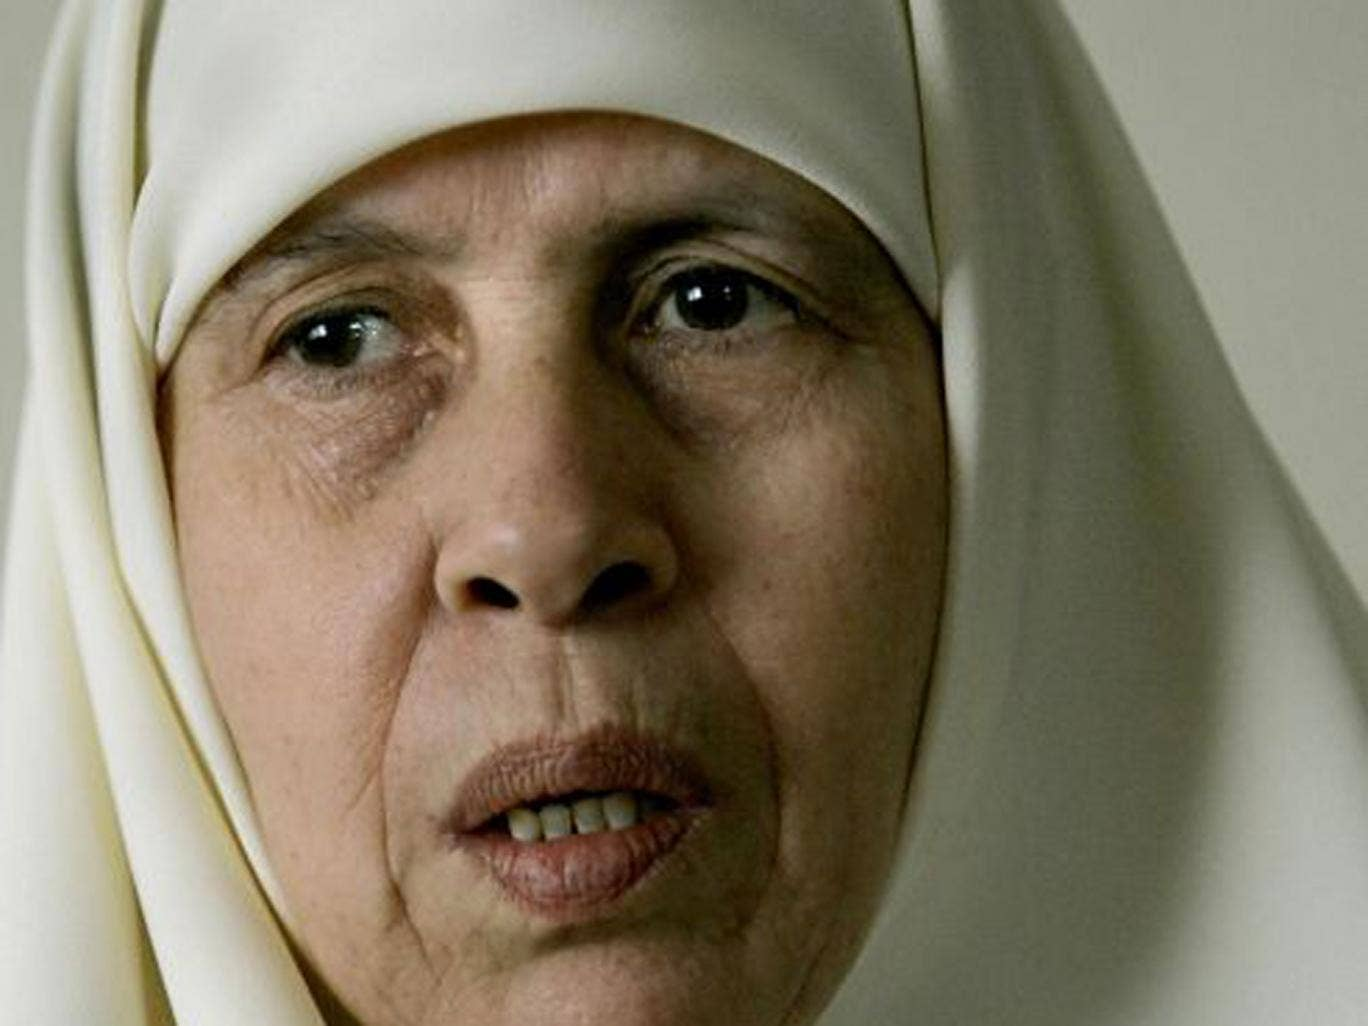 """Marian Farhat, who died on 17 March aged 64, was a Palestinian lawmaker known as """"the mother of martyrs"""""""